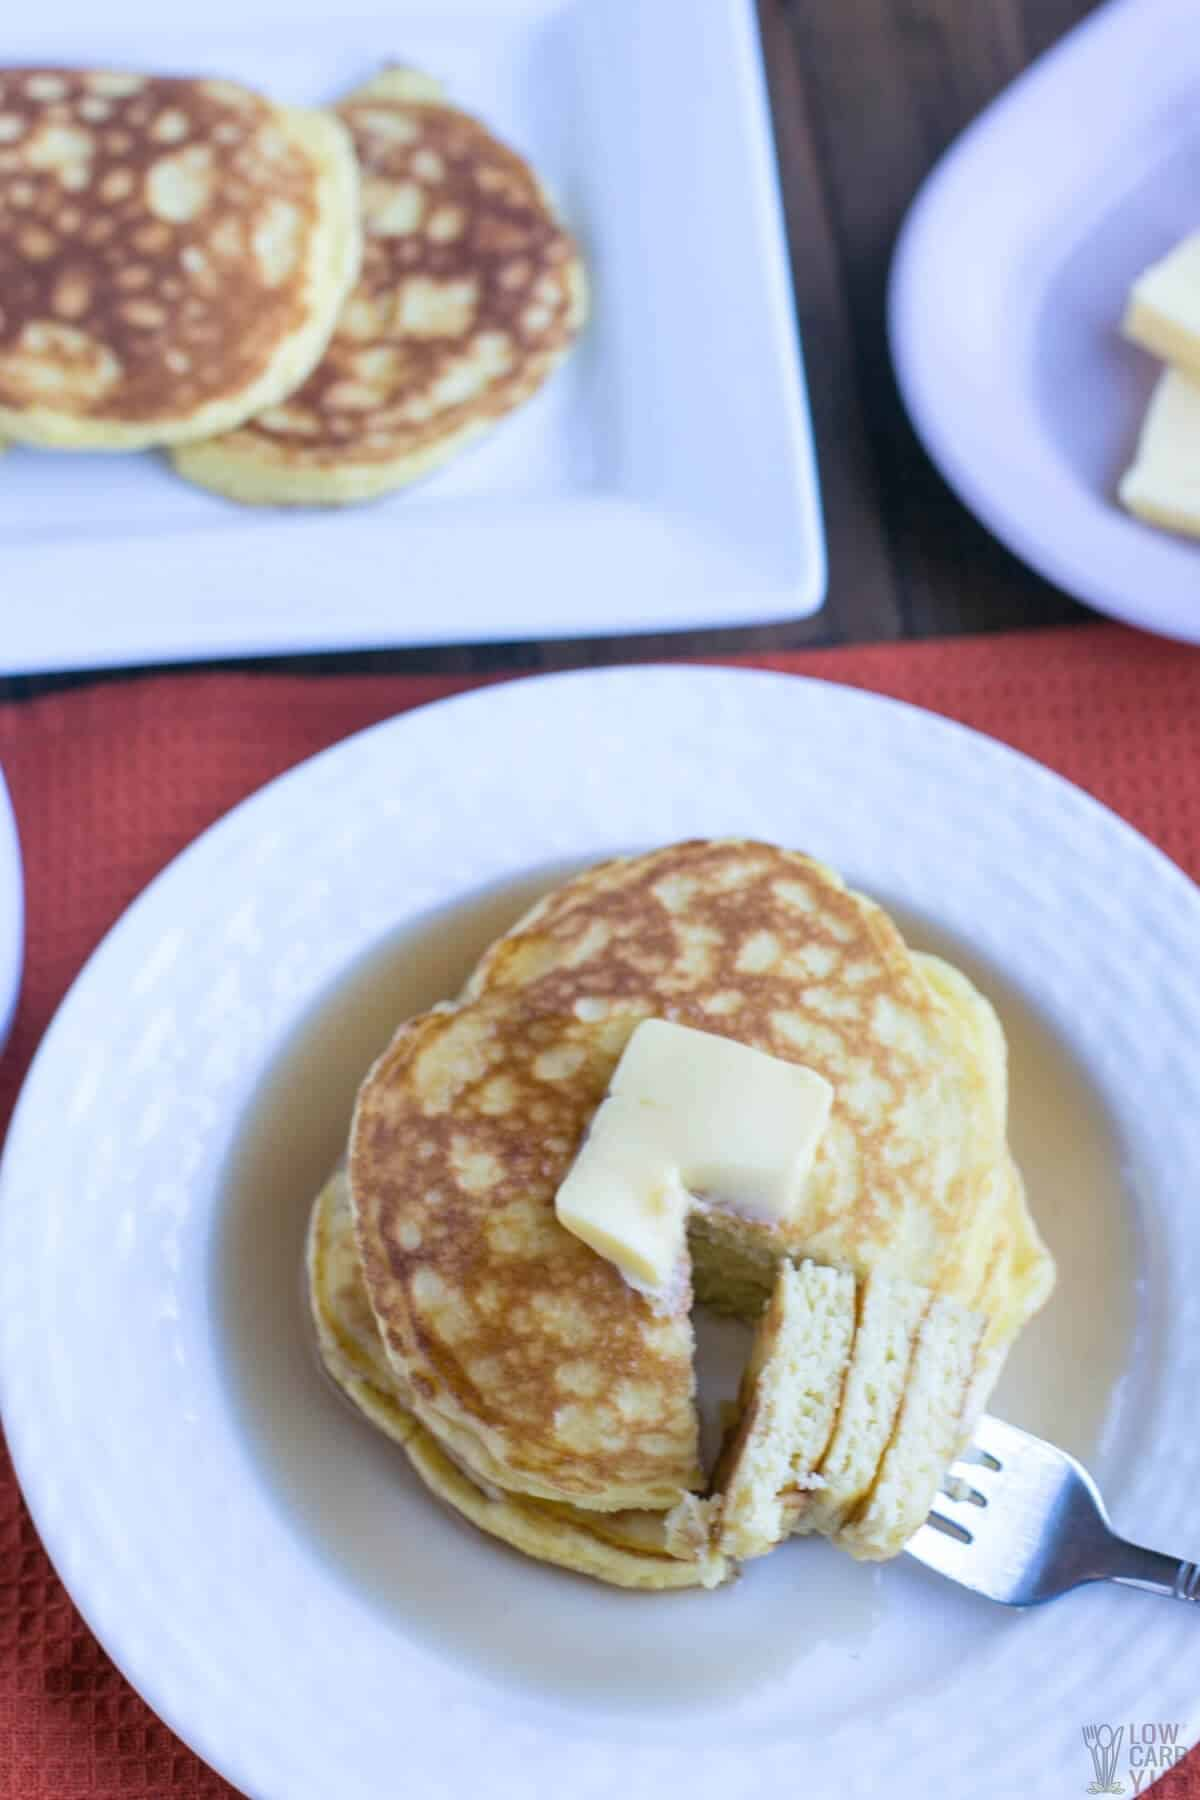 keto coconut flour pancakes on white plate with fork bite